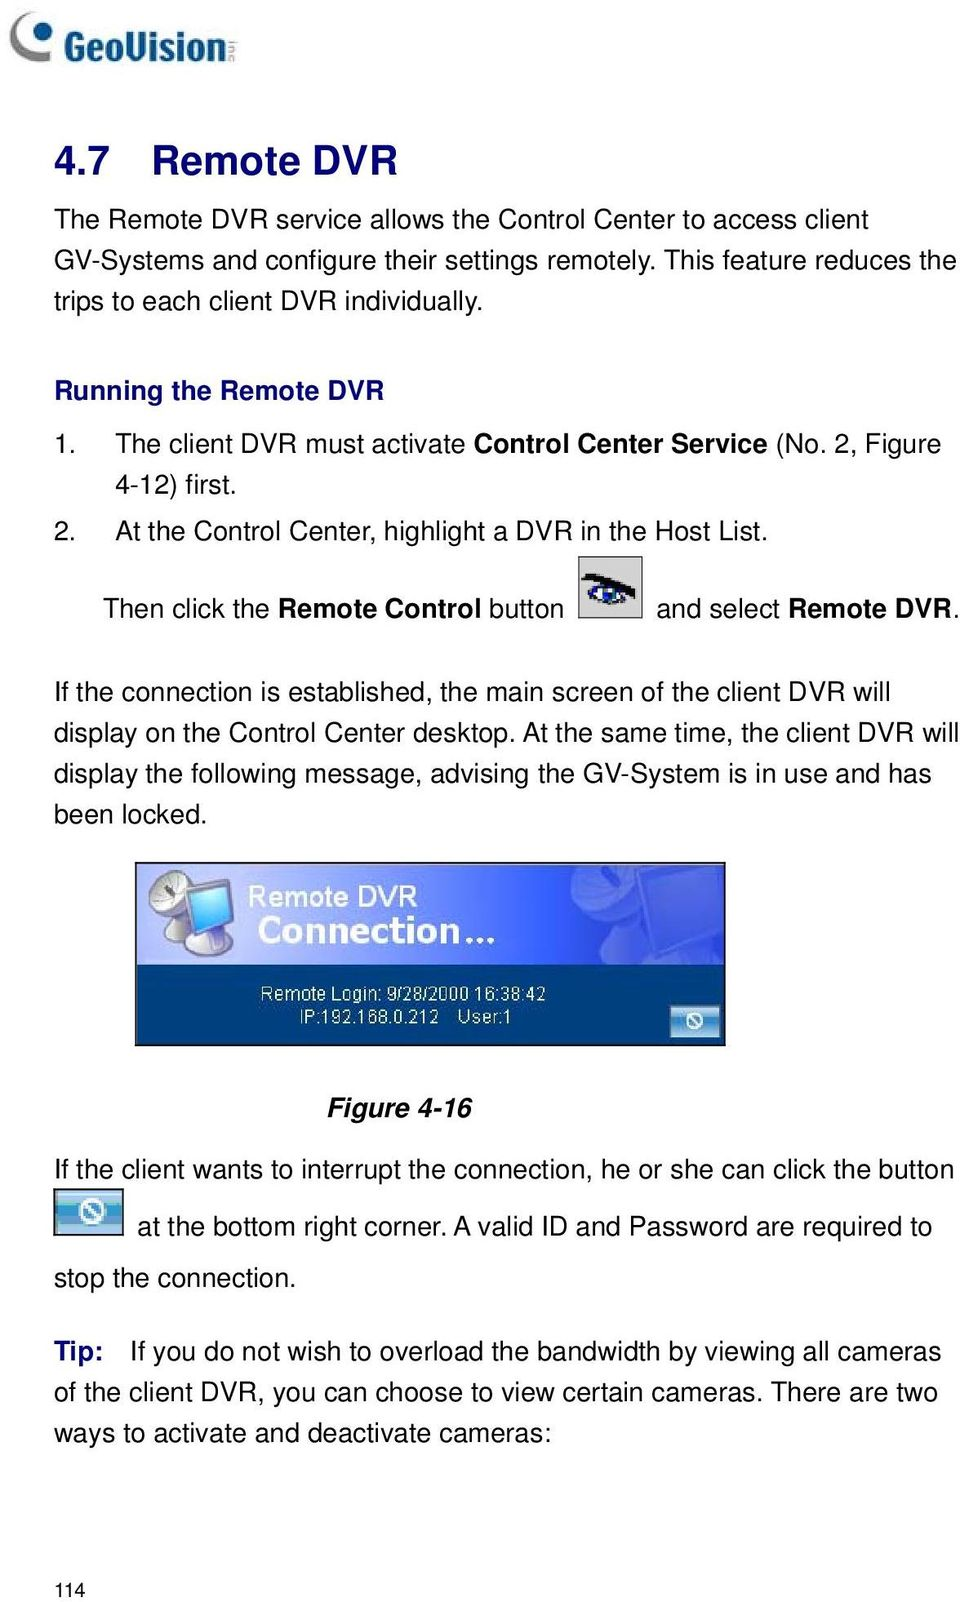 Then click the Remote Control button and select Remote DVR. If the connection is established, the main screen of the client DVR will display on the Control Center desktop.